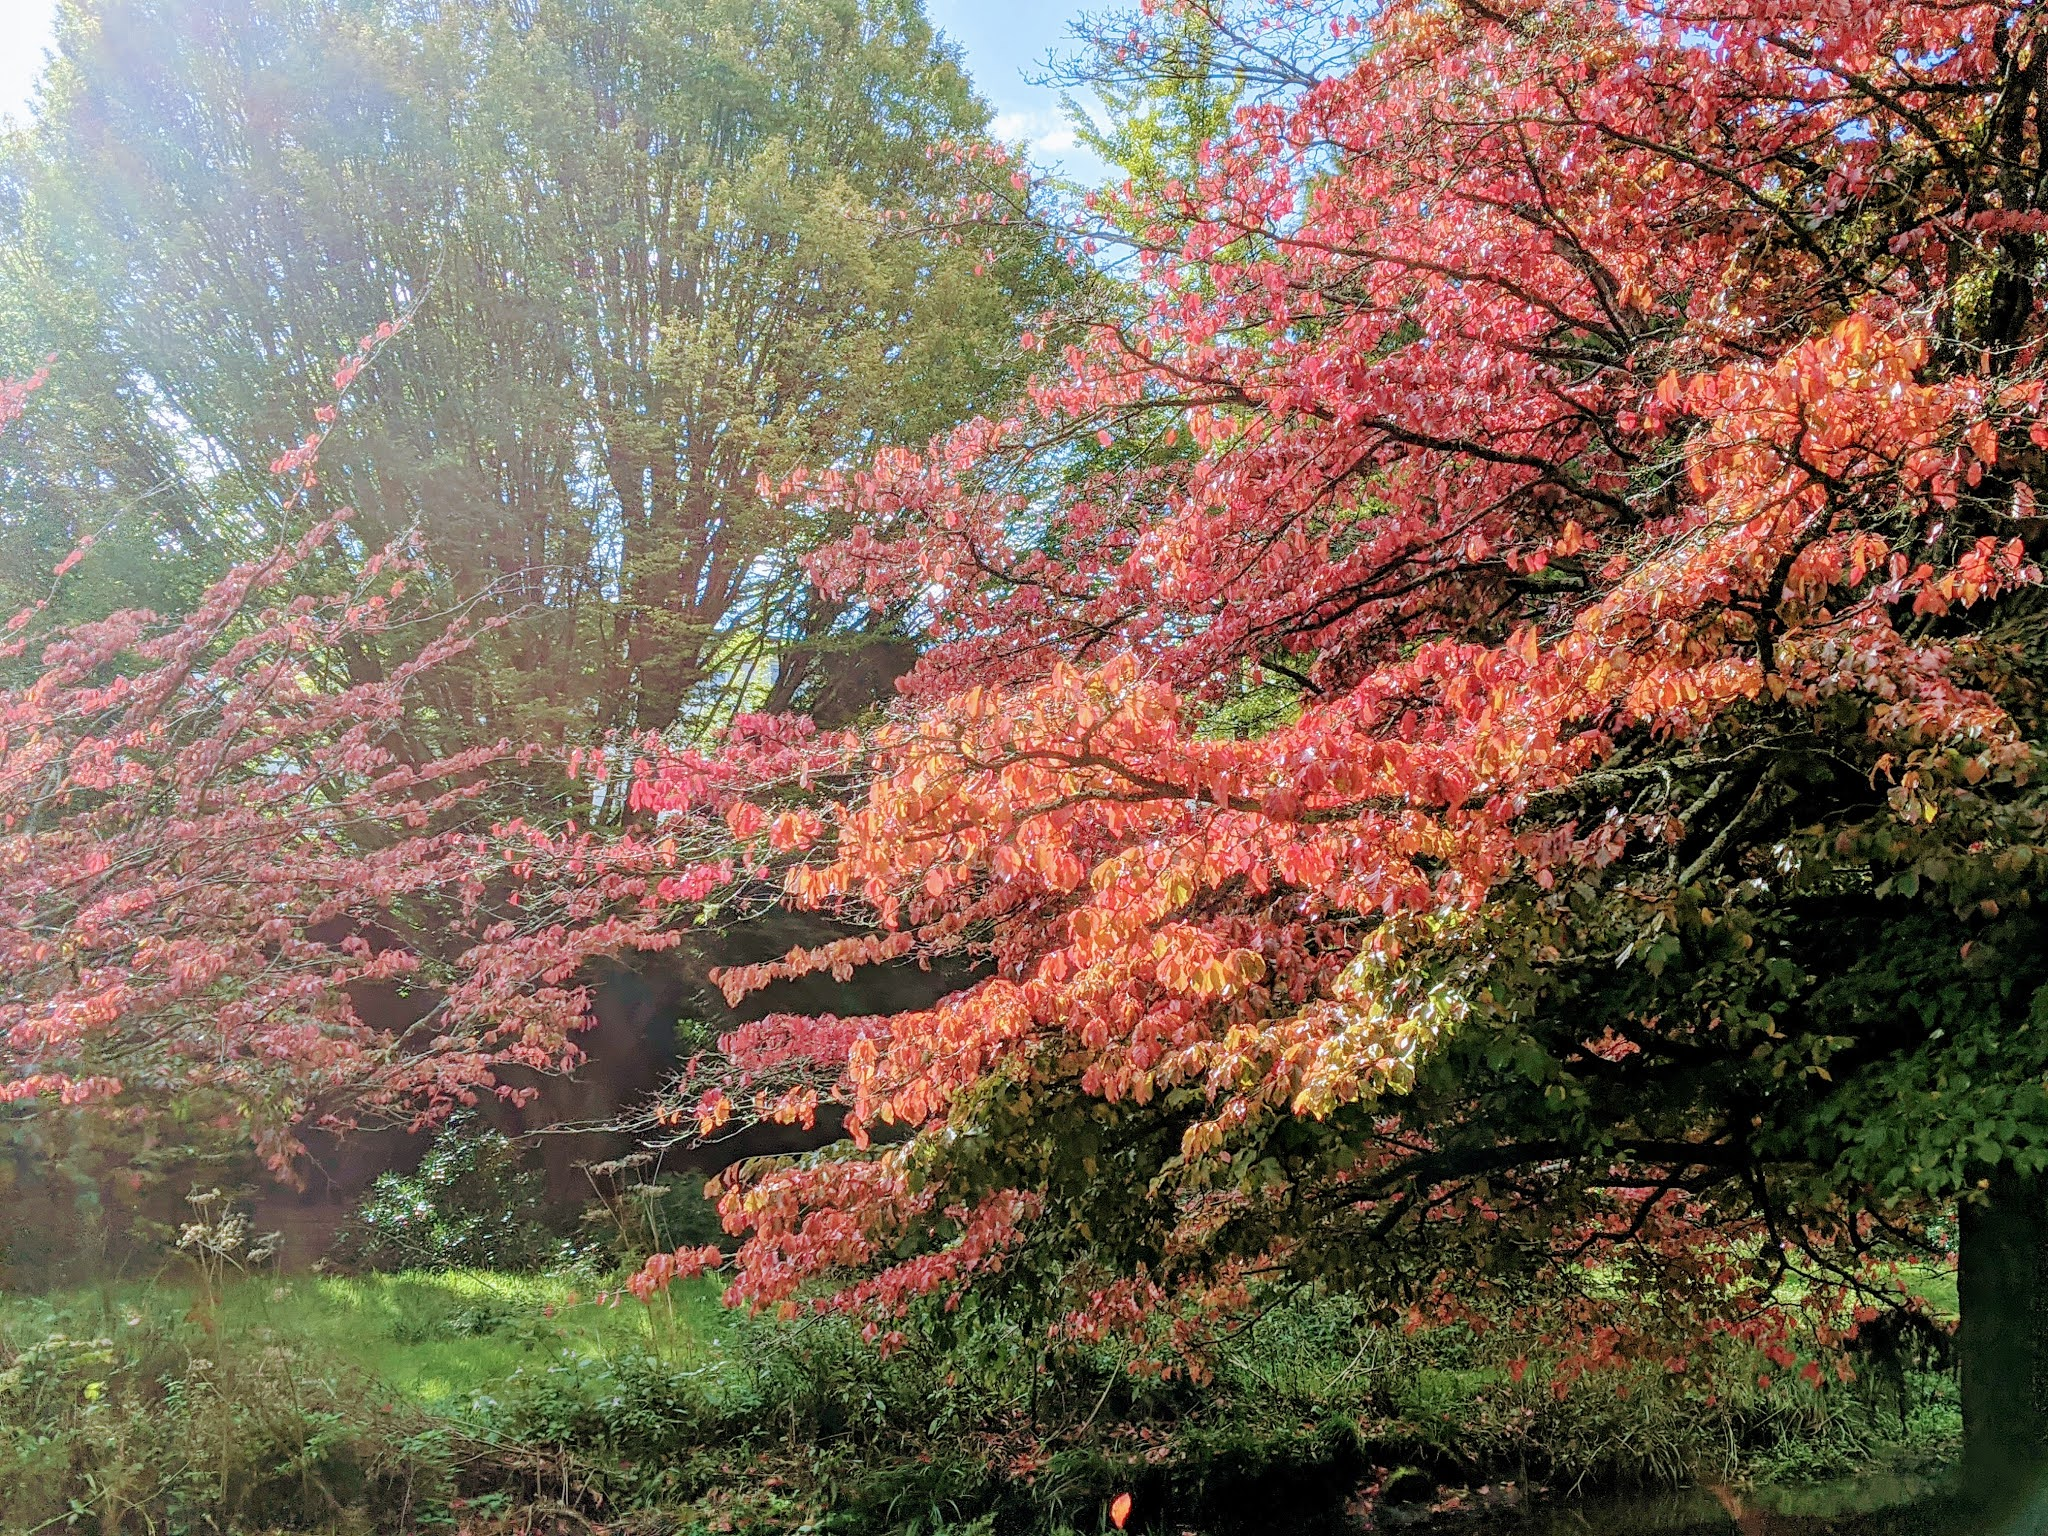 Autumn colour in Bournemouth gardens